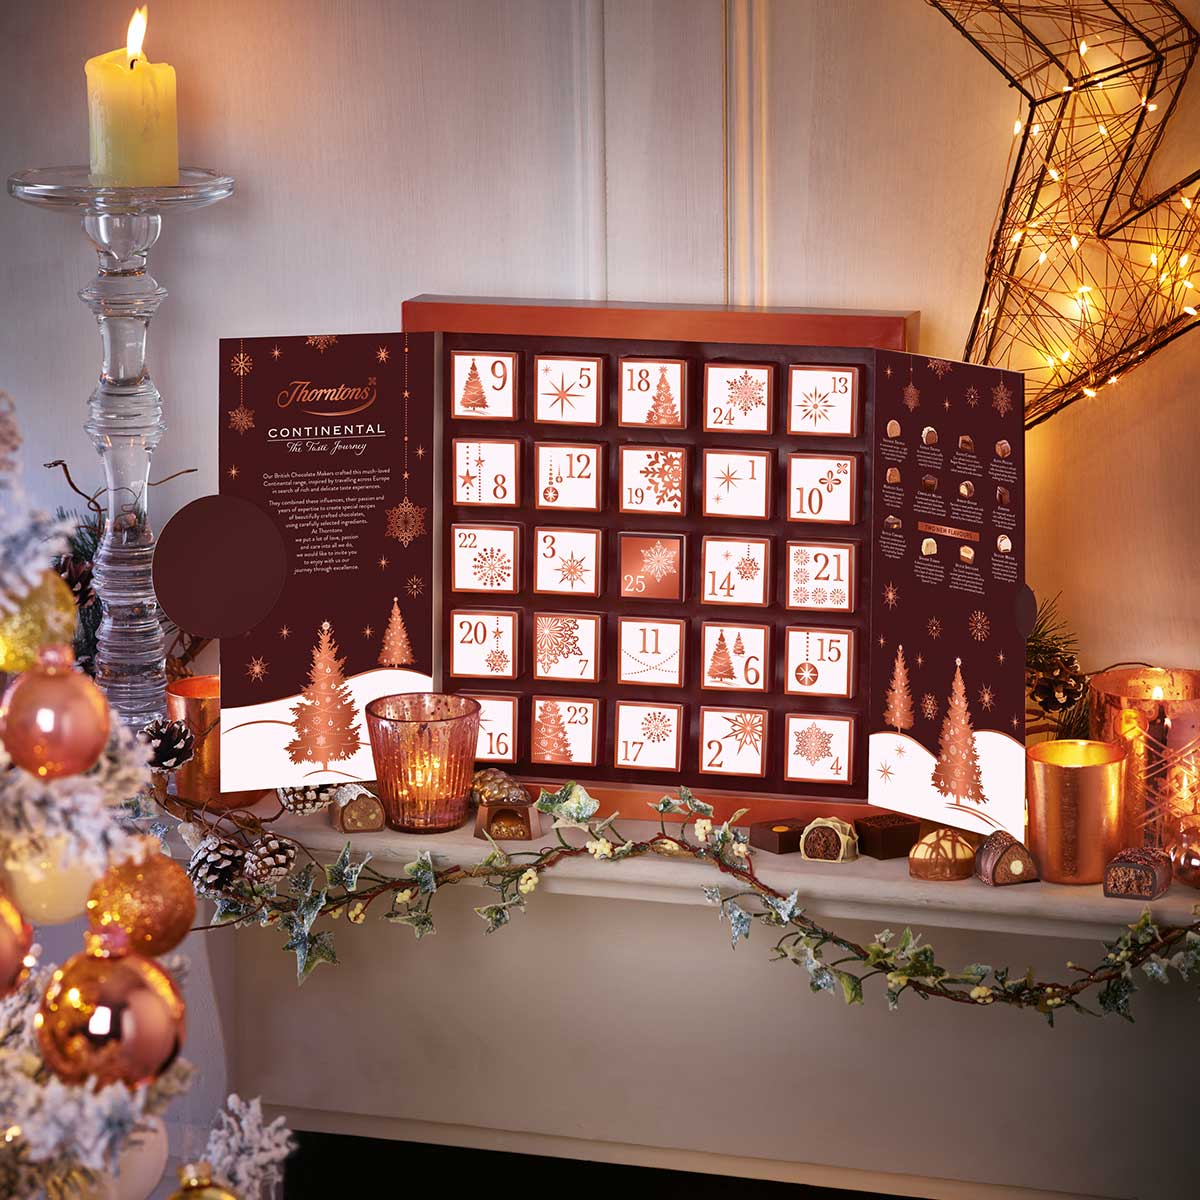 image showing the continental Advent Calendar